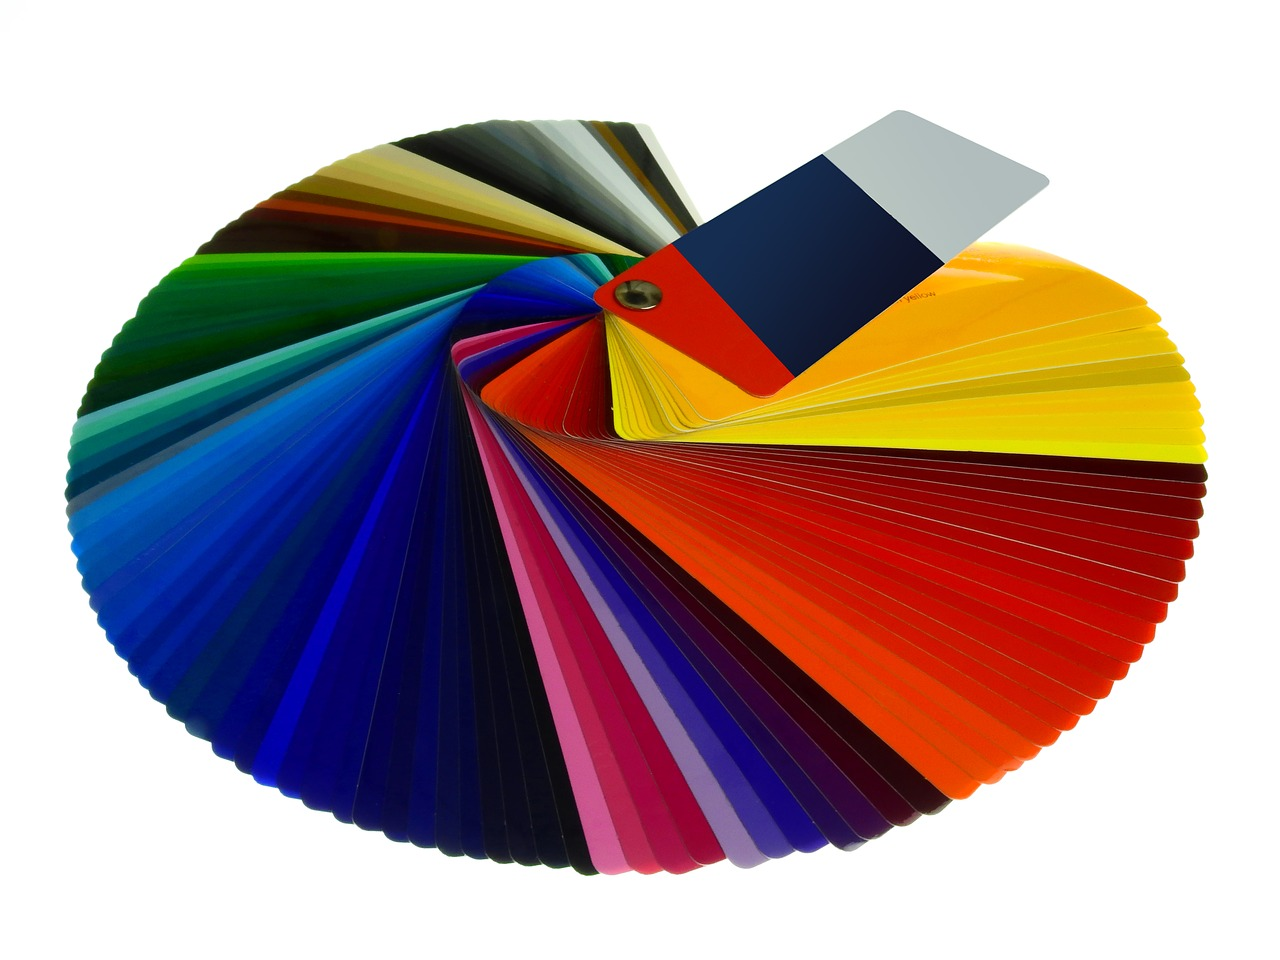 color fan color card color free photo